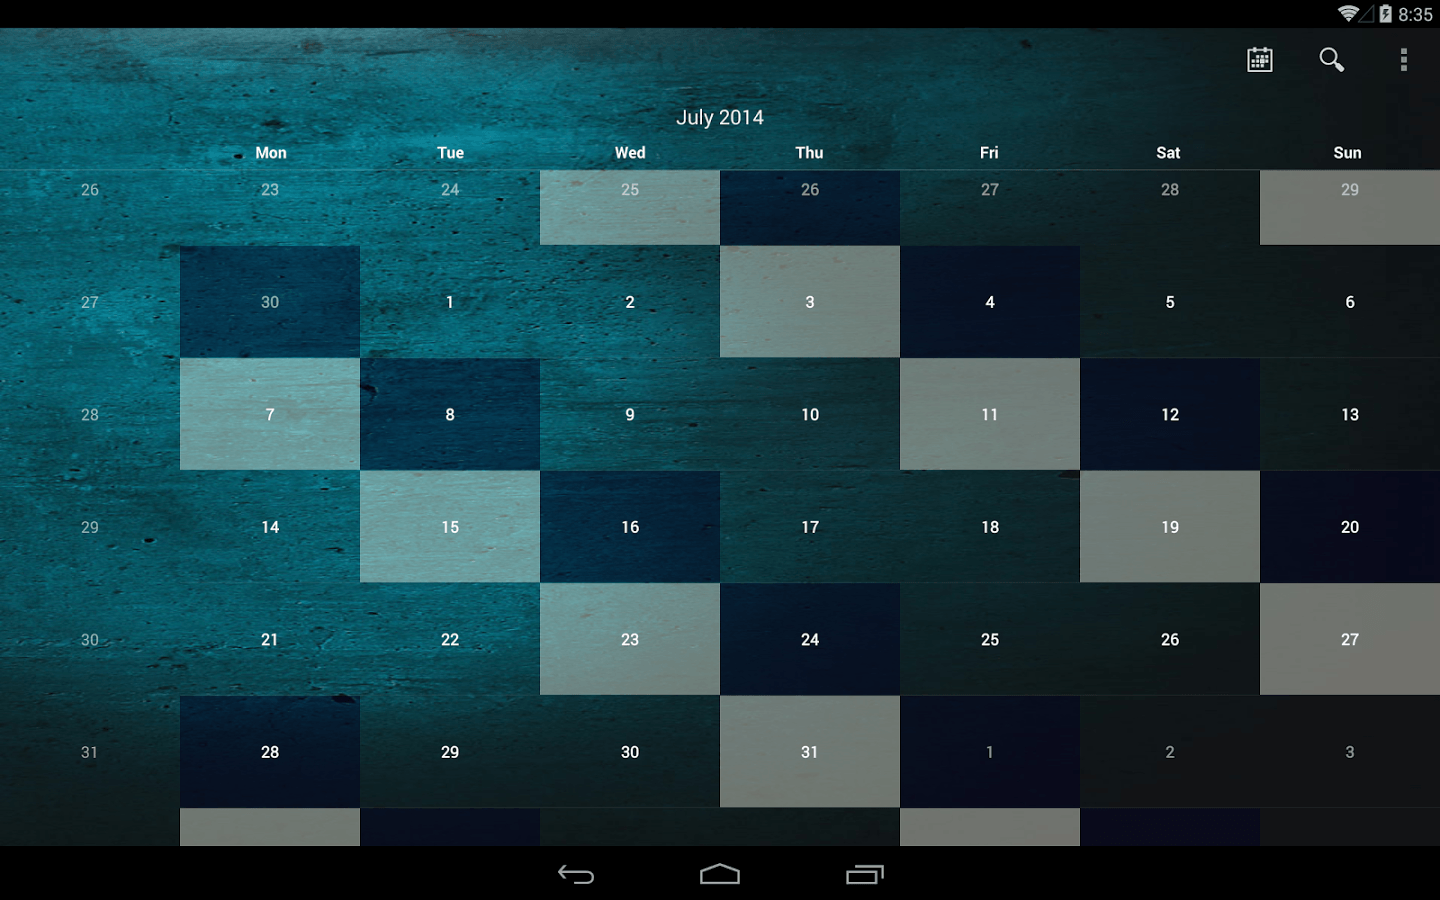 Android] Manage your work shifts with Shift Work Schedule ...